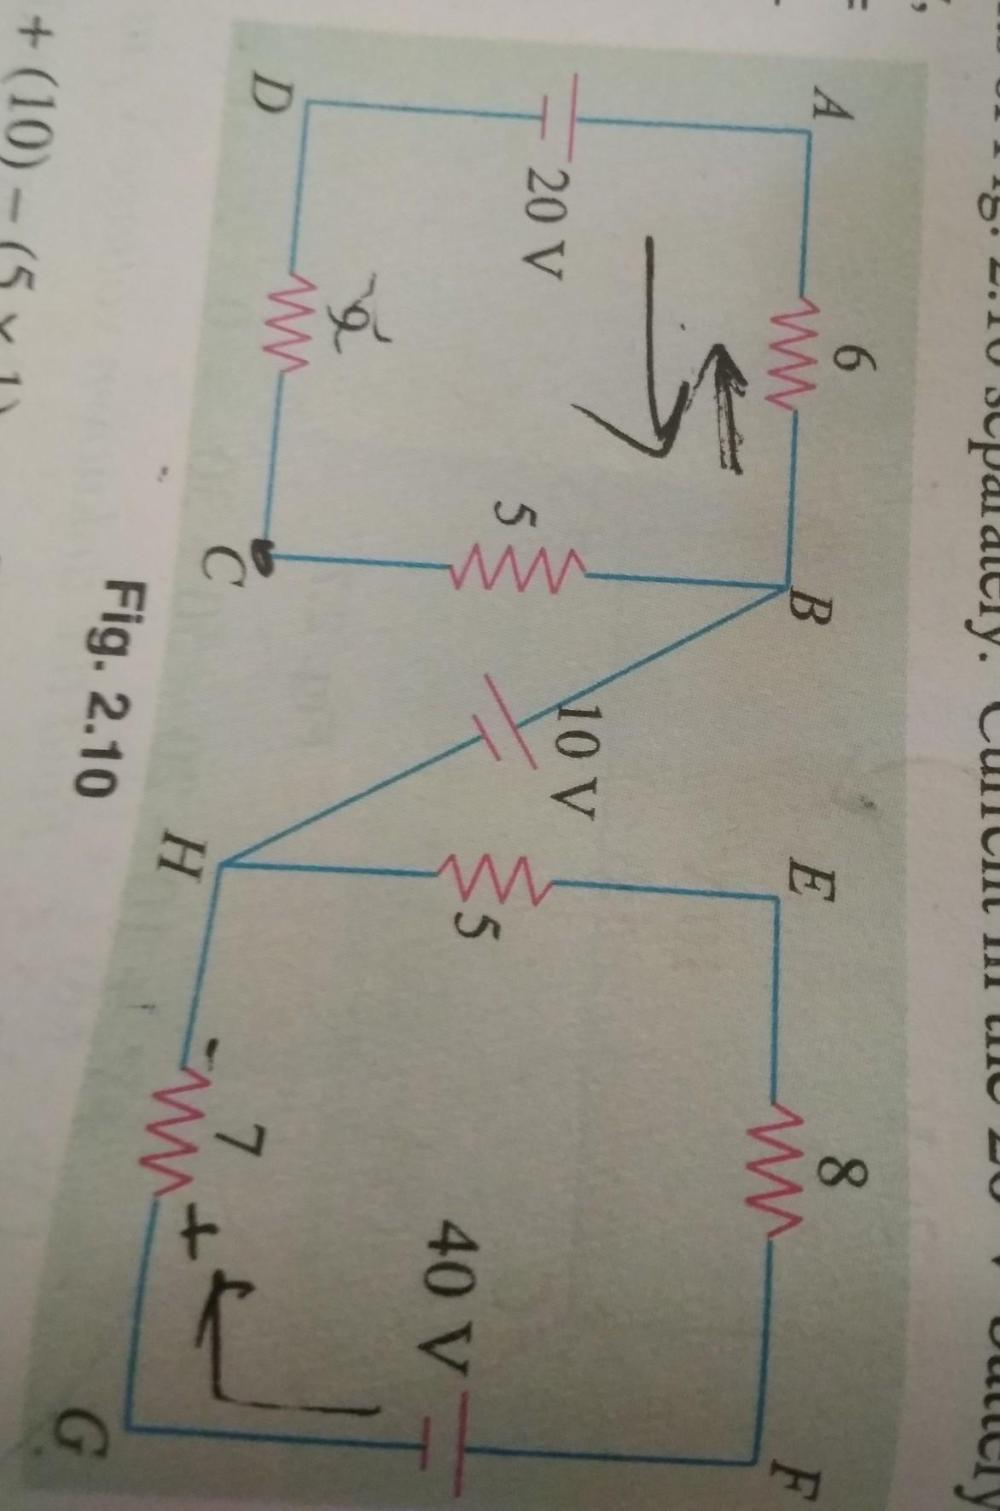 medium resolution of find vce and vag of the given circuit diagram br if u ans circuit diagram usb circuit diagram u